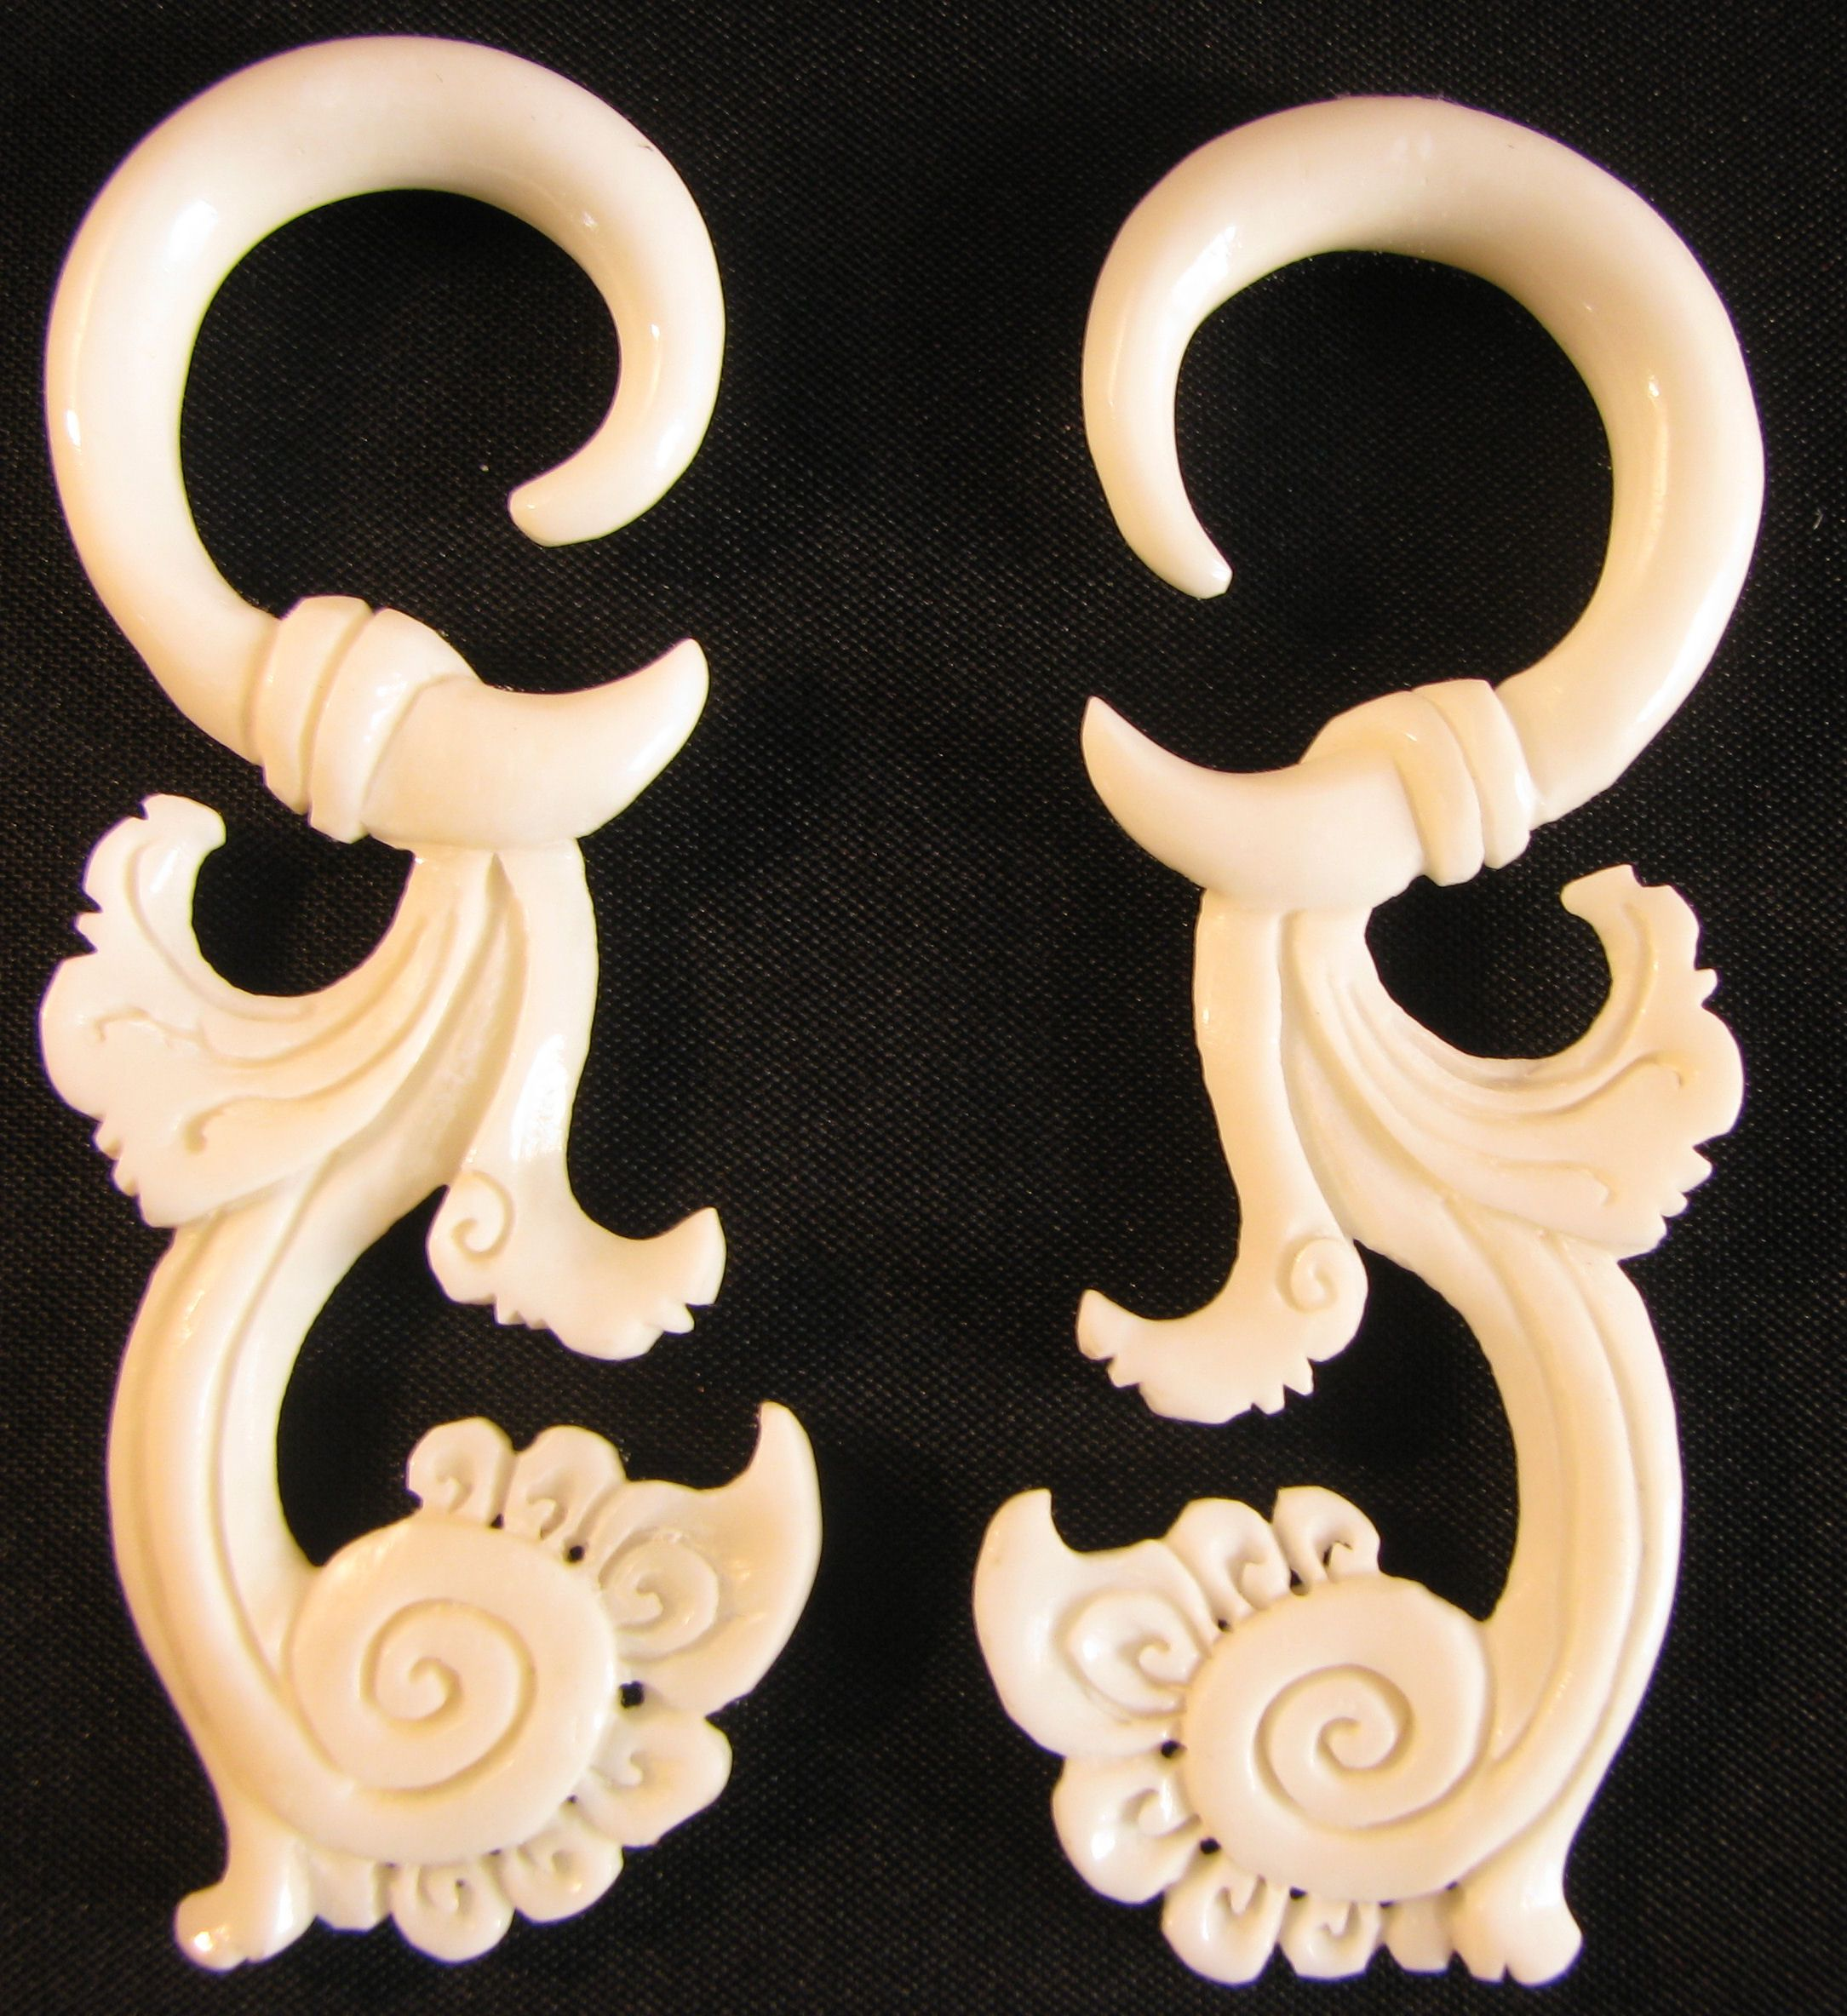 Carved Bone Spiral Gauge Earrings Hanging Gauges Ear Gauges Gauged Earrings